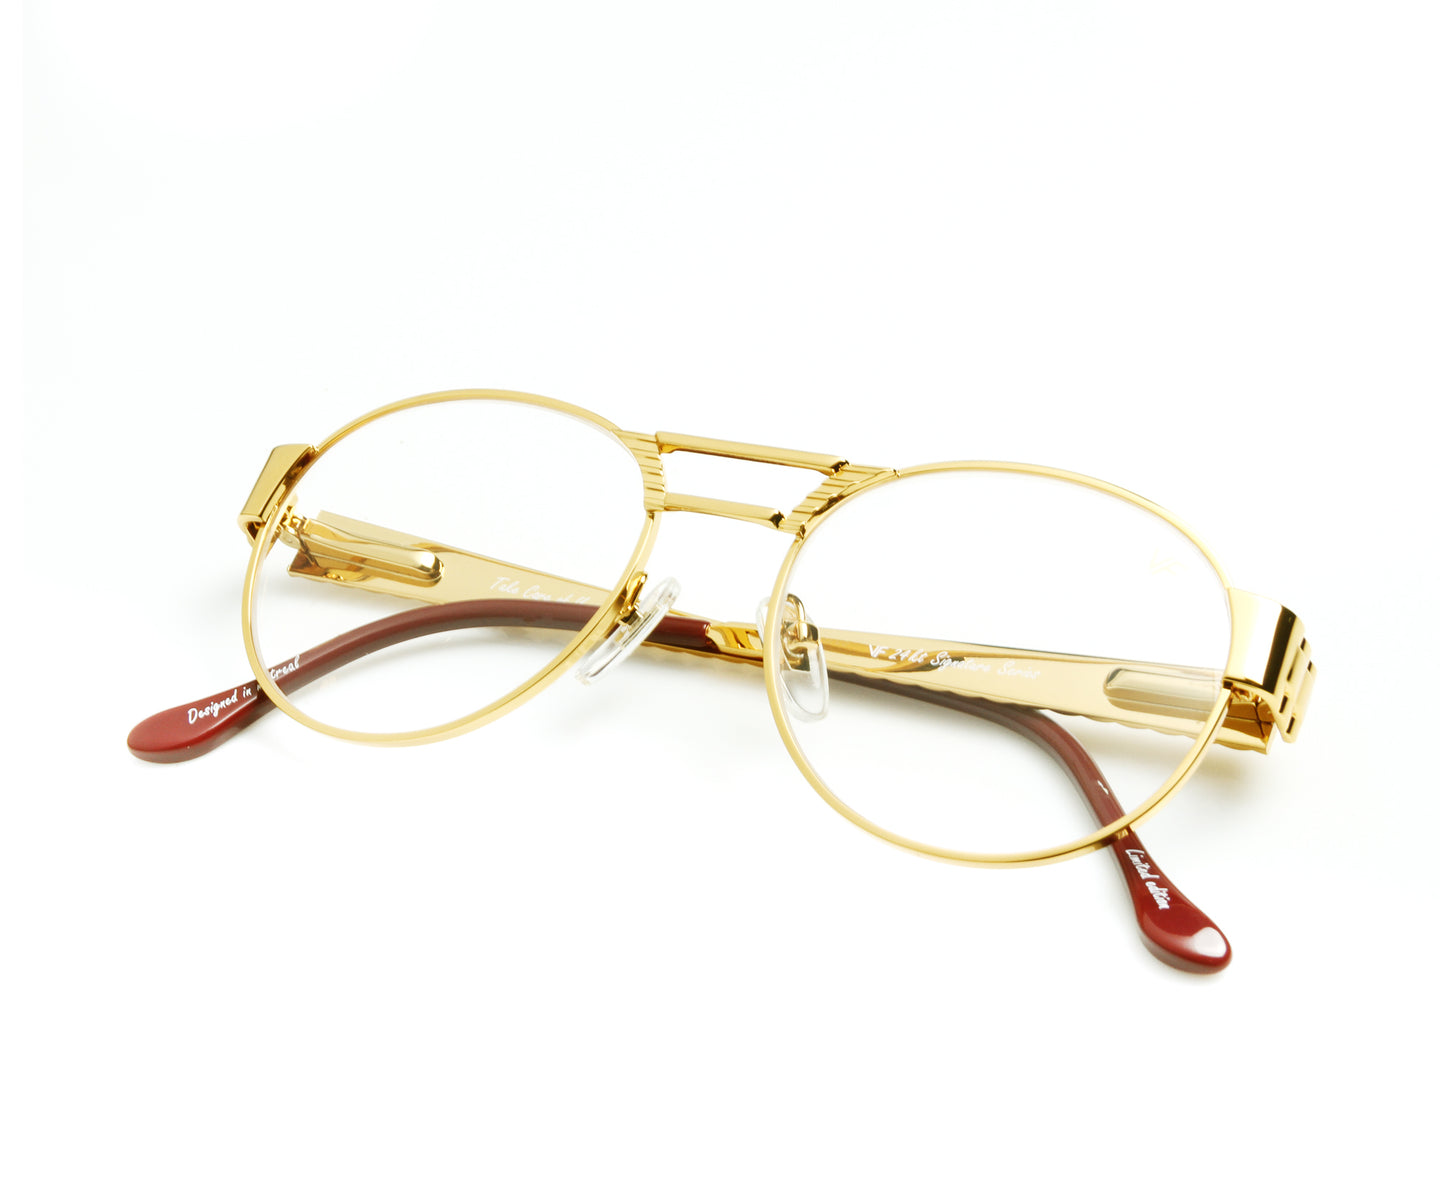 VF Jubilee 24KT Gold (Clear) Thumb, VF Masterpiece , glasses frames, eyeglasses online, eyeglass frames, mens glasses, womens glasses, buy glasses online, designer eyeglasses, vintage sunglasses, retro sunglasses, vintage glasses, sunglass, eyeglass, glasses, lens, vintage frames company, vf